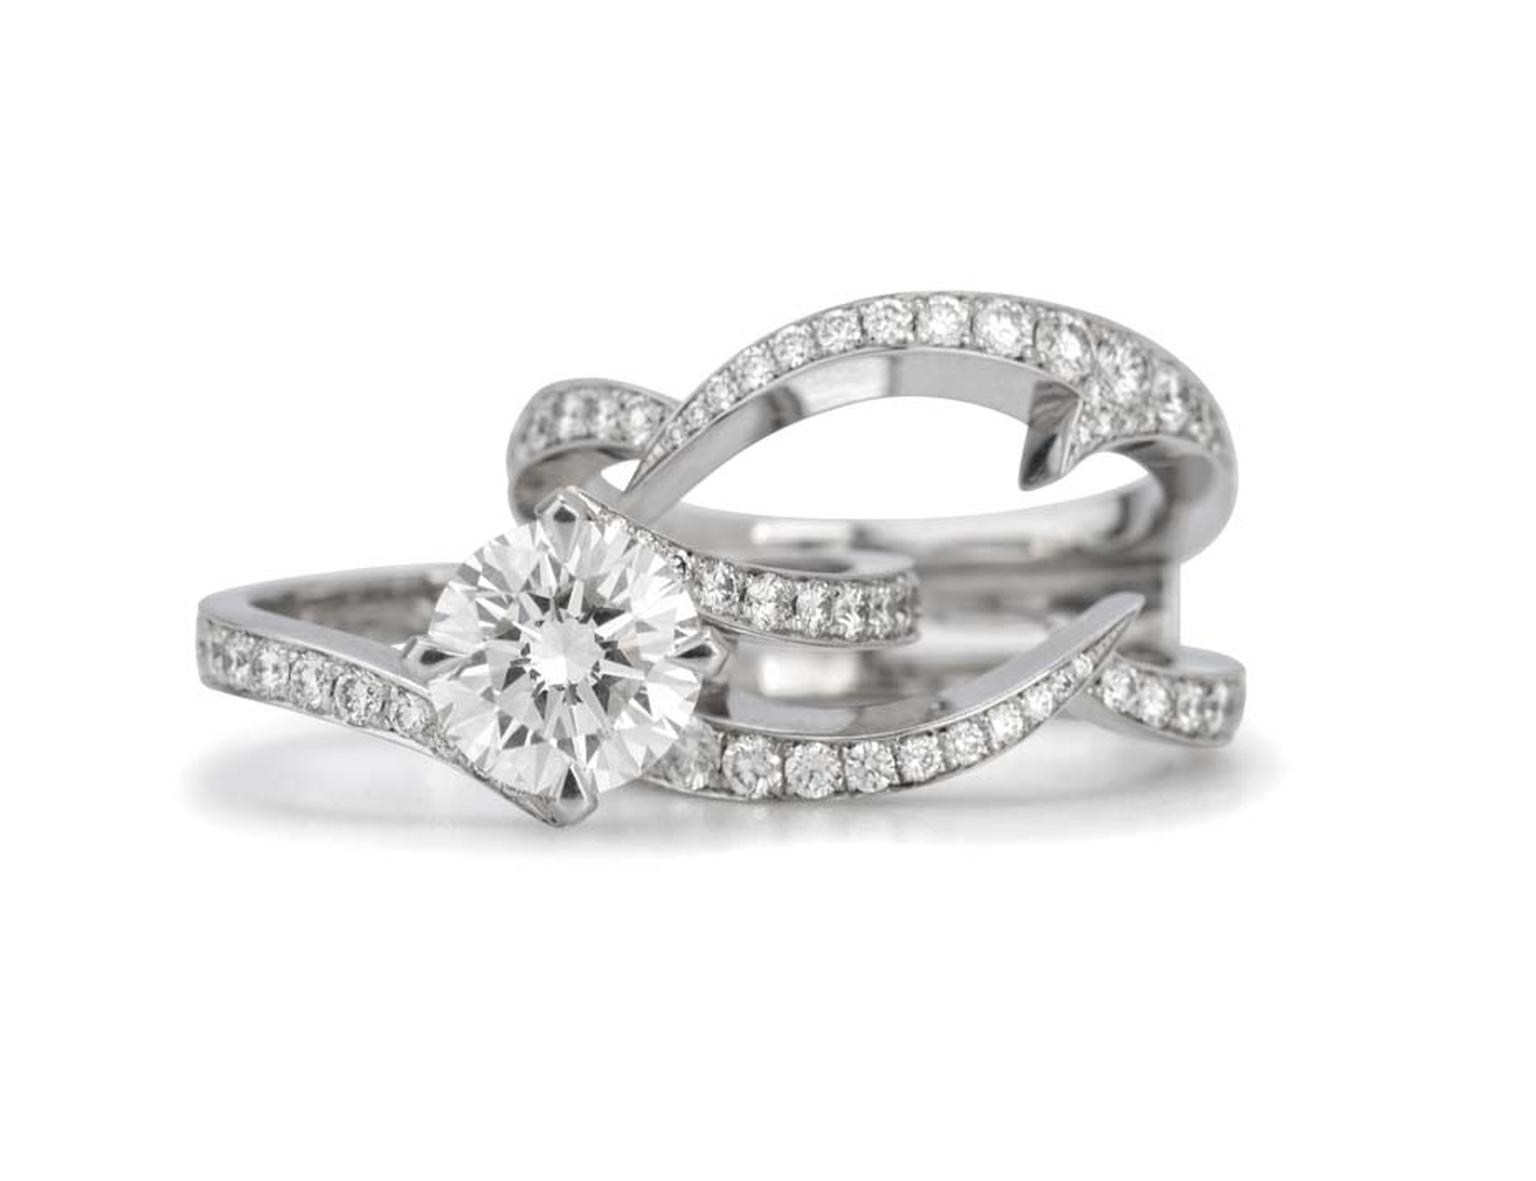 Stephen Webster's Bridal Collection 'Thorn' interlocking engagement ring and wedding diamond band with Forevermark diamonds.